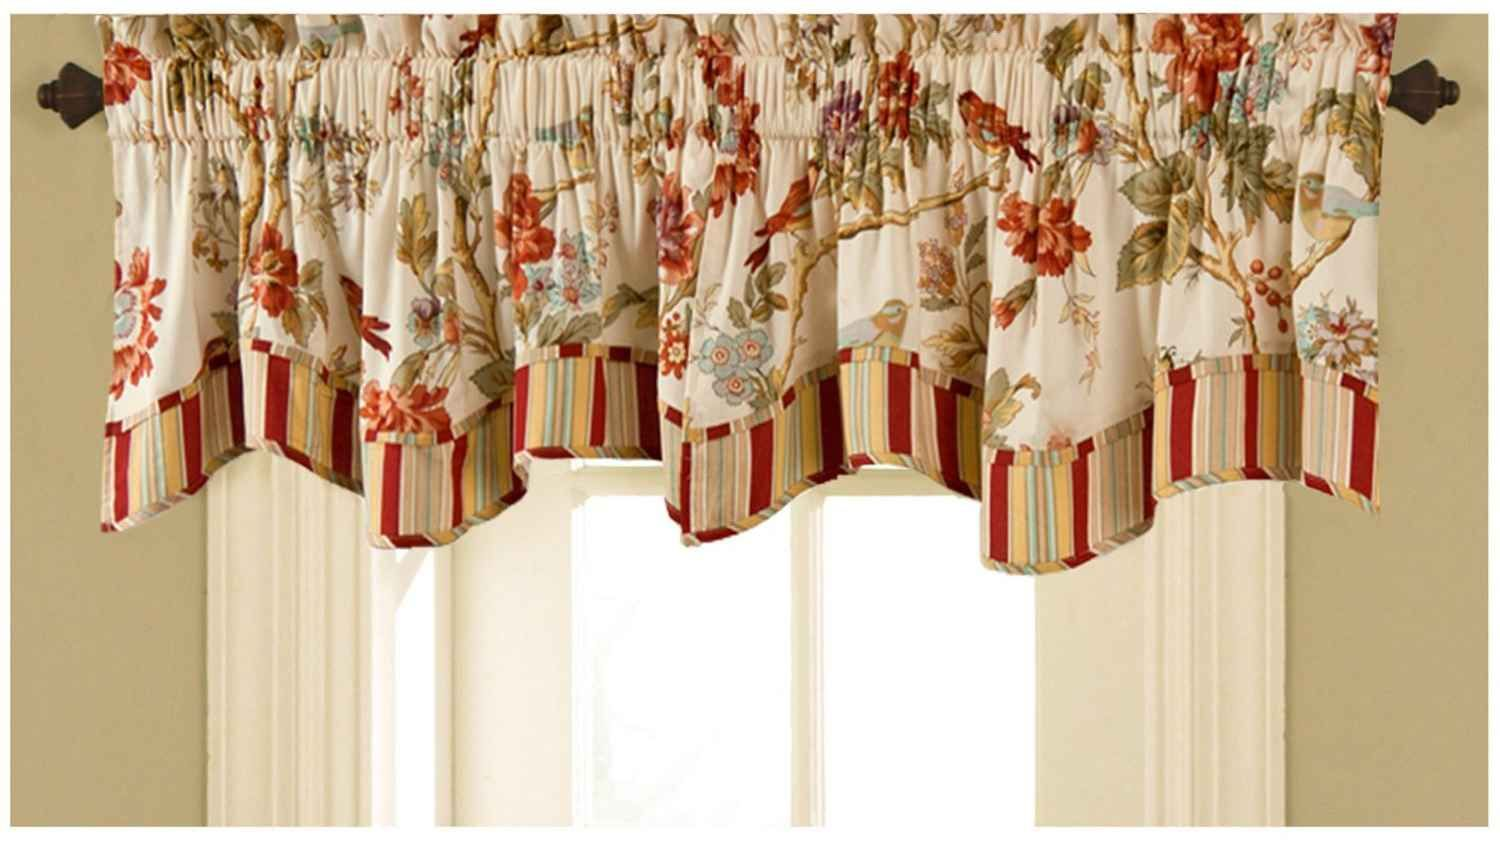 The color choice and the pattern of the kitchen valances